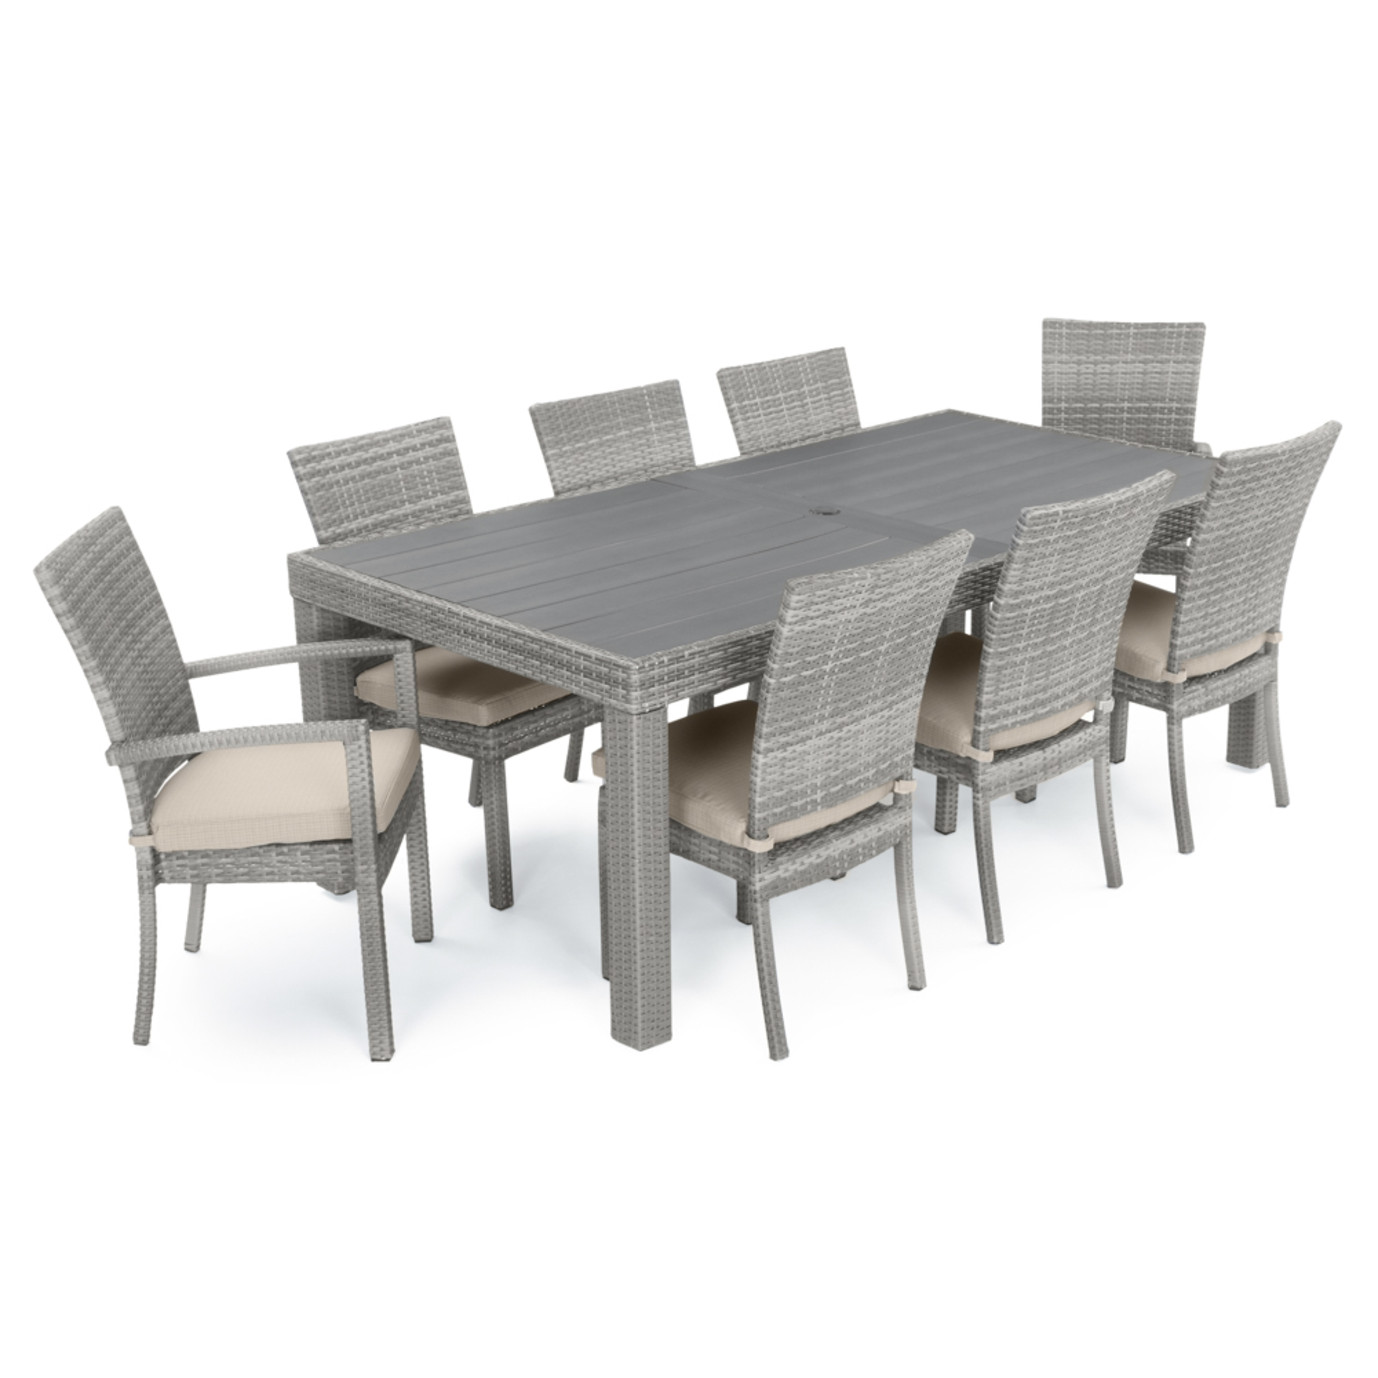 Cannes™ Woven Dining Set - Slate Grey